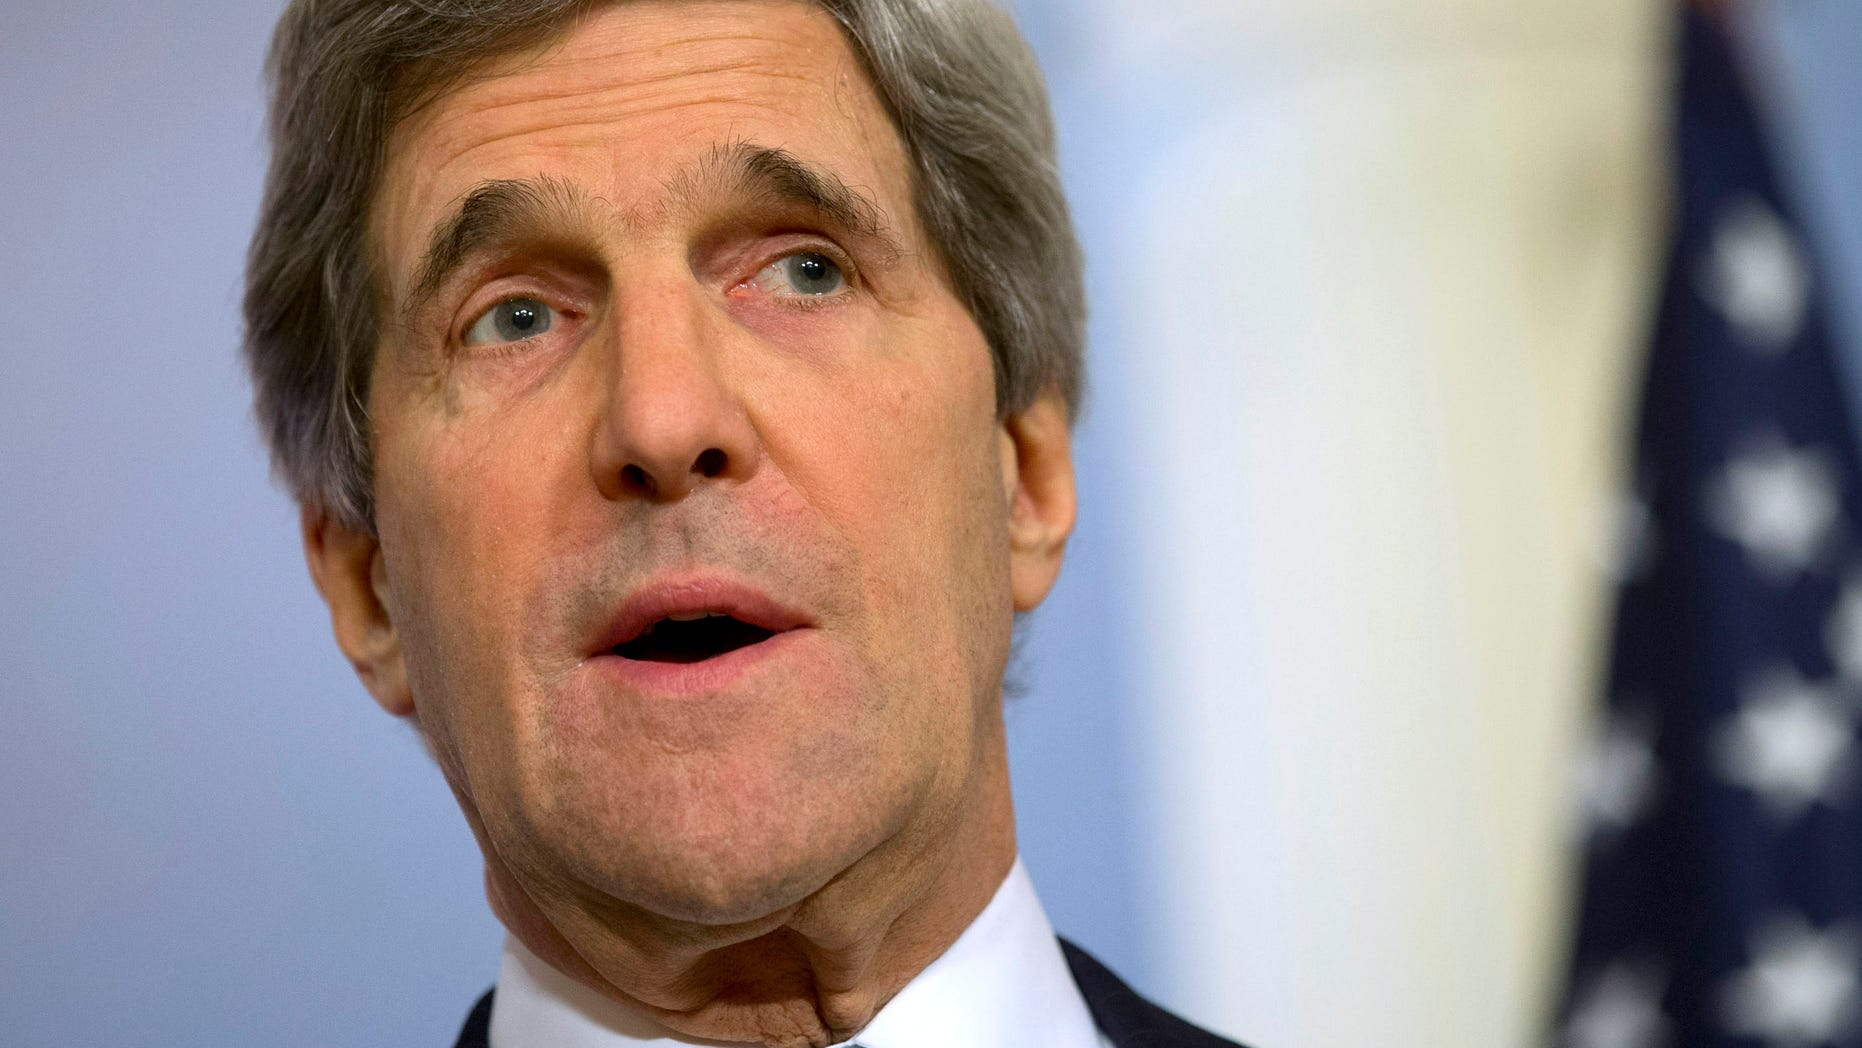 FILE: Feb. 14, 2013: Secretary of State John Kerry speaks at the State Department in Washington, D.C.